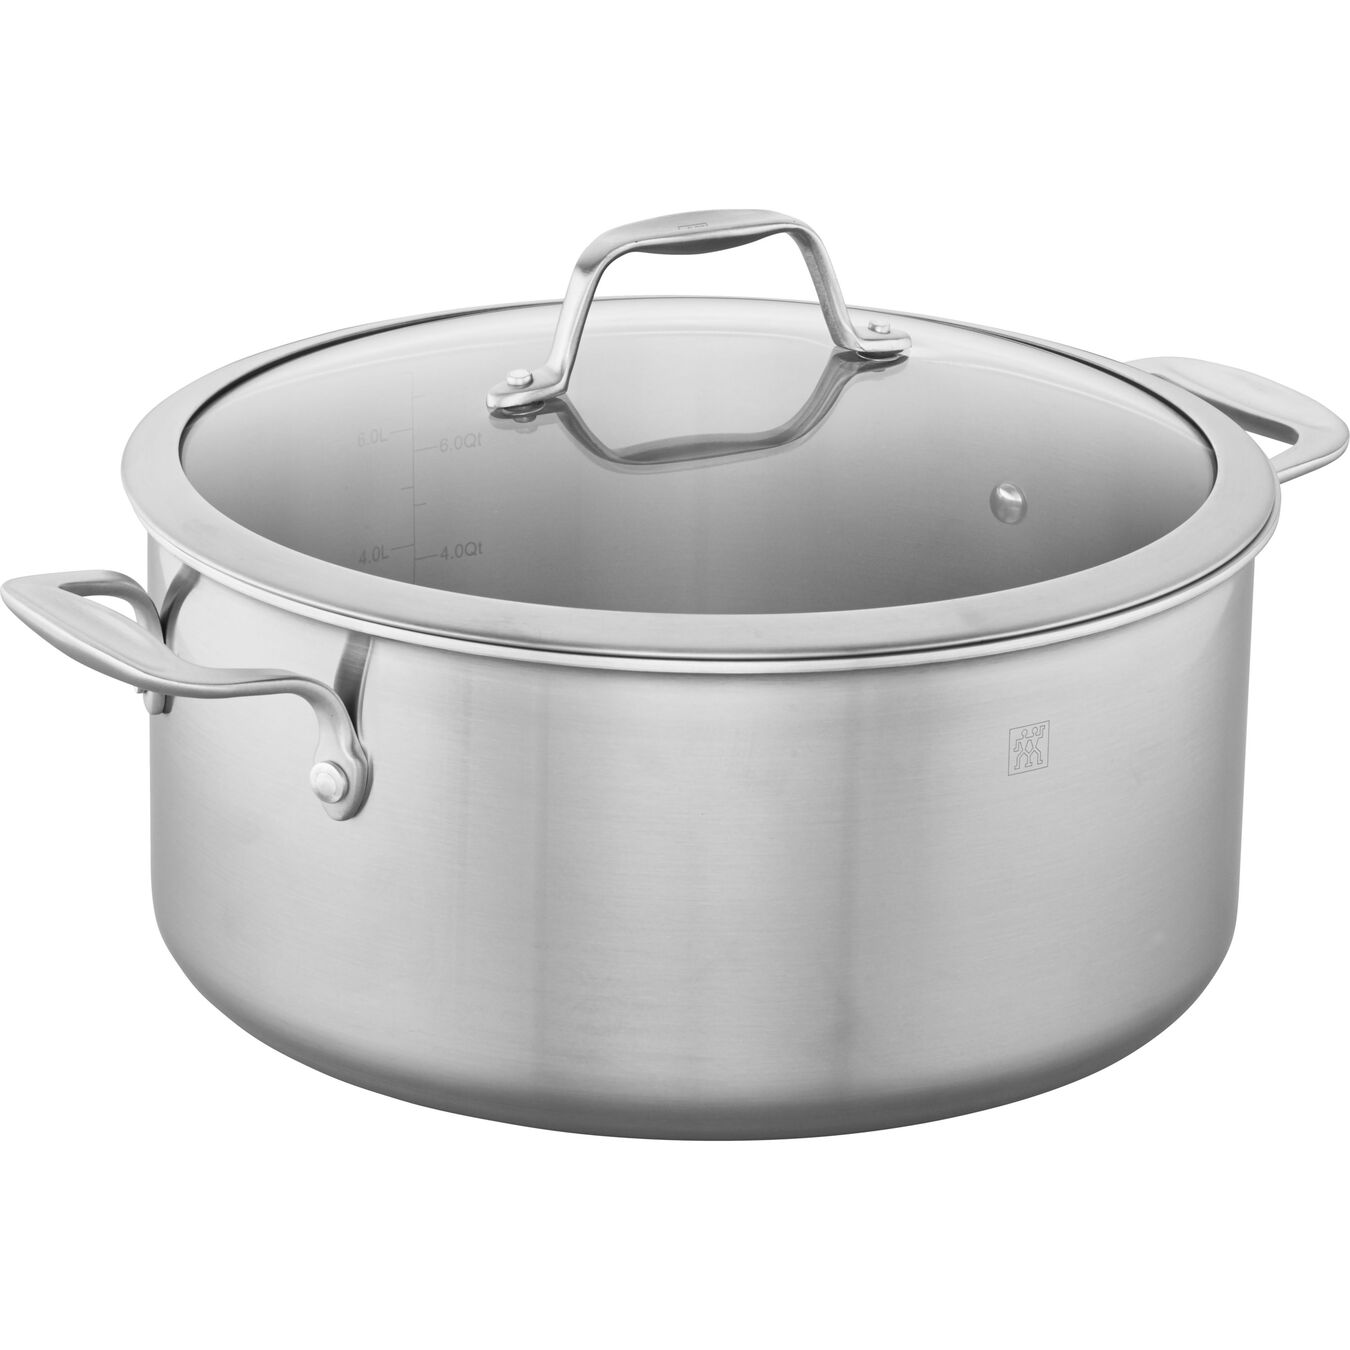 18/10 Stainless Steel, 8 qt, 18/10 Stainless Steel, Stock pot,,large 1